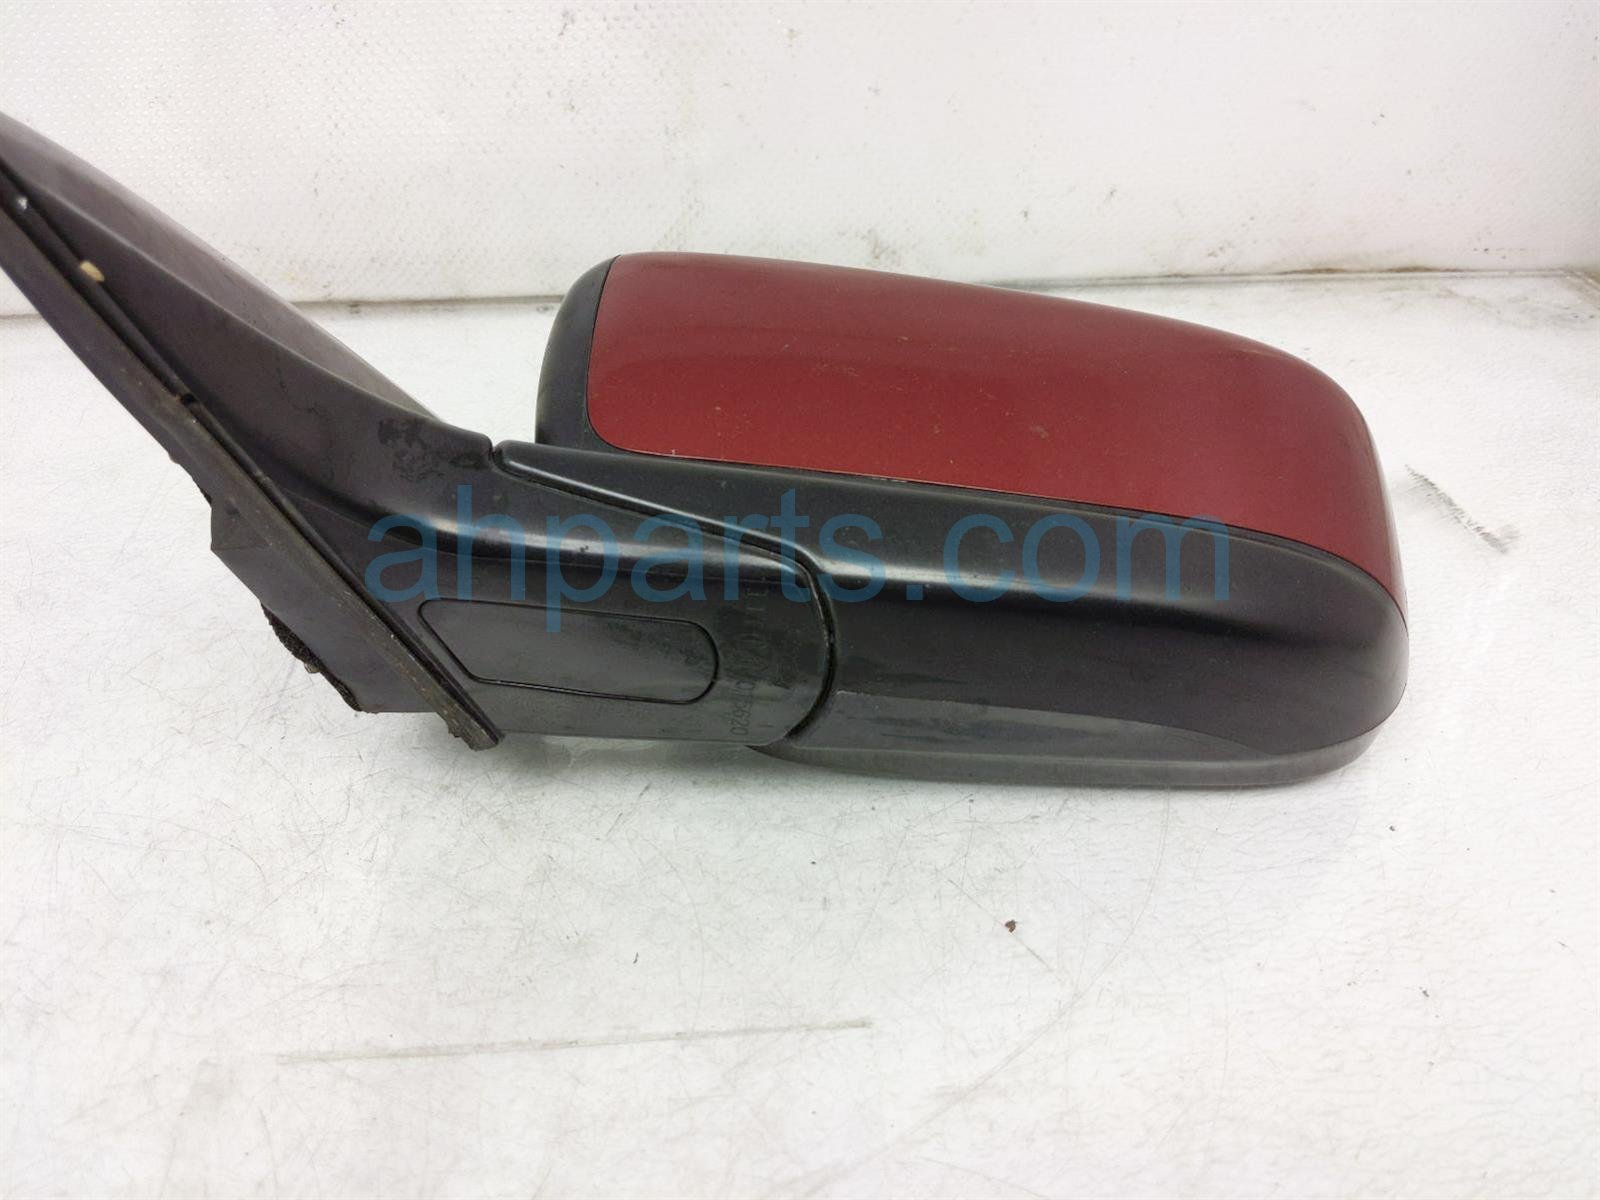 2007 Honda Accord Rear Driver Side View Mirror   Red 76250 SDA A23ZP Replacement